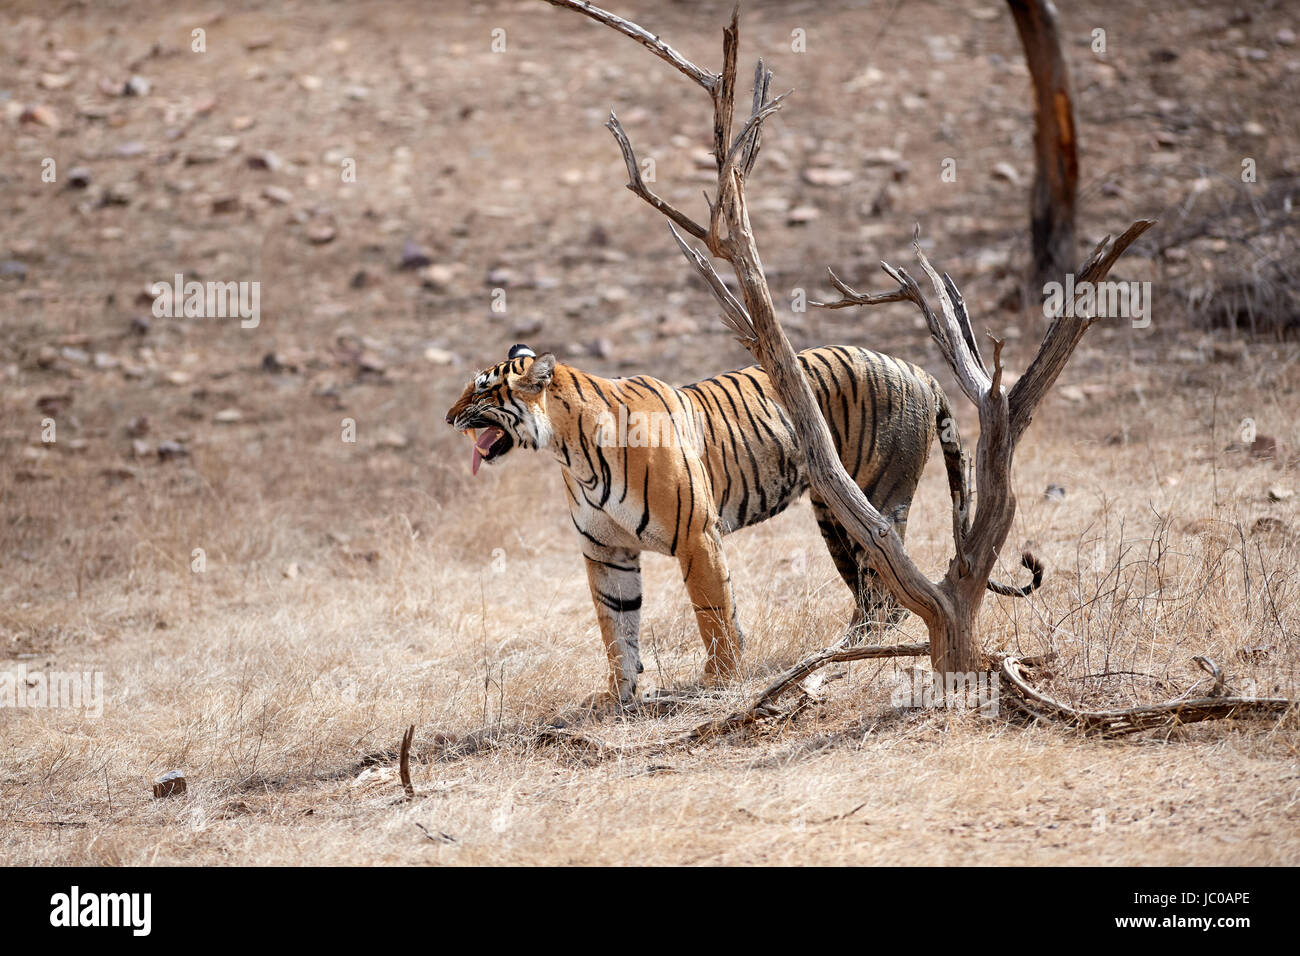 A female Bengal Tiger doing the Flehmen response after sniffing a tree. Stock Photo